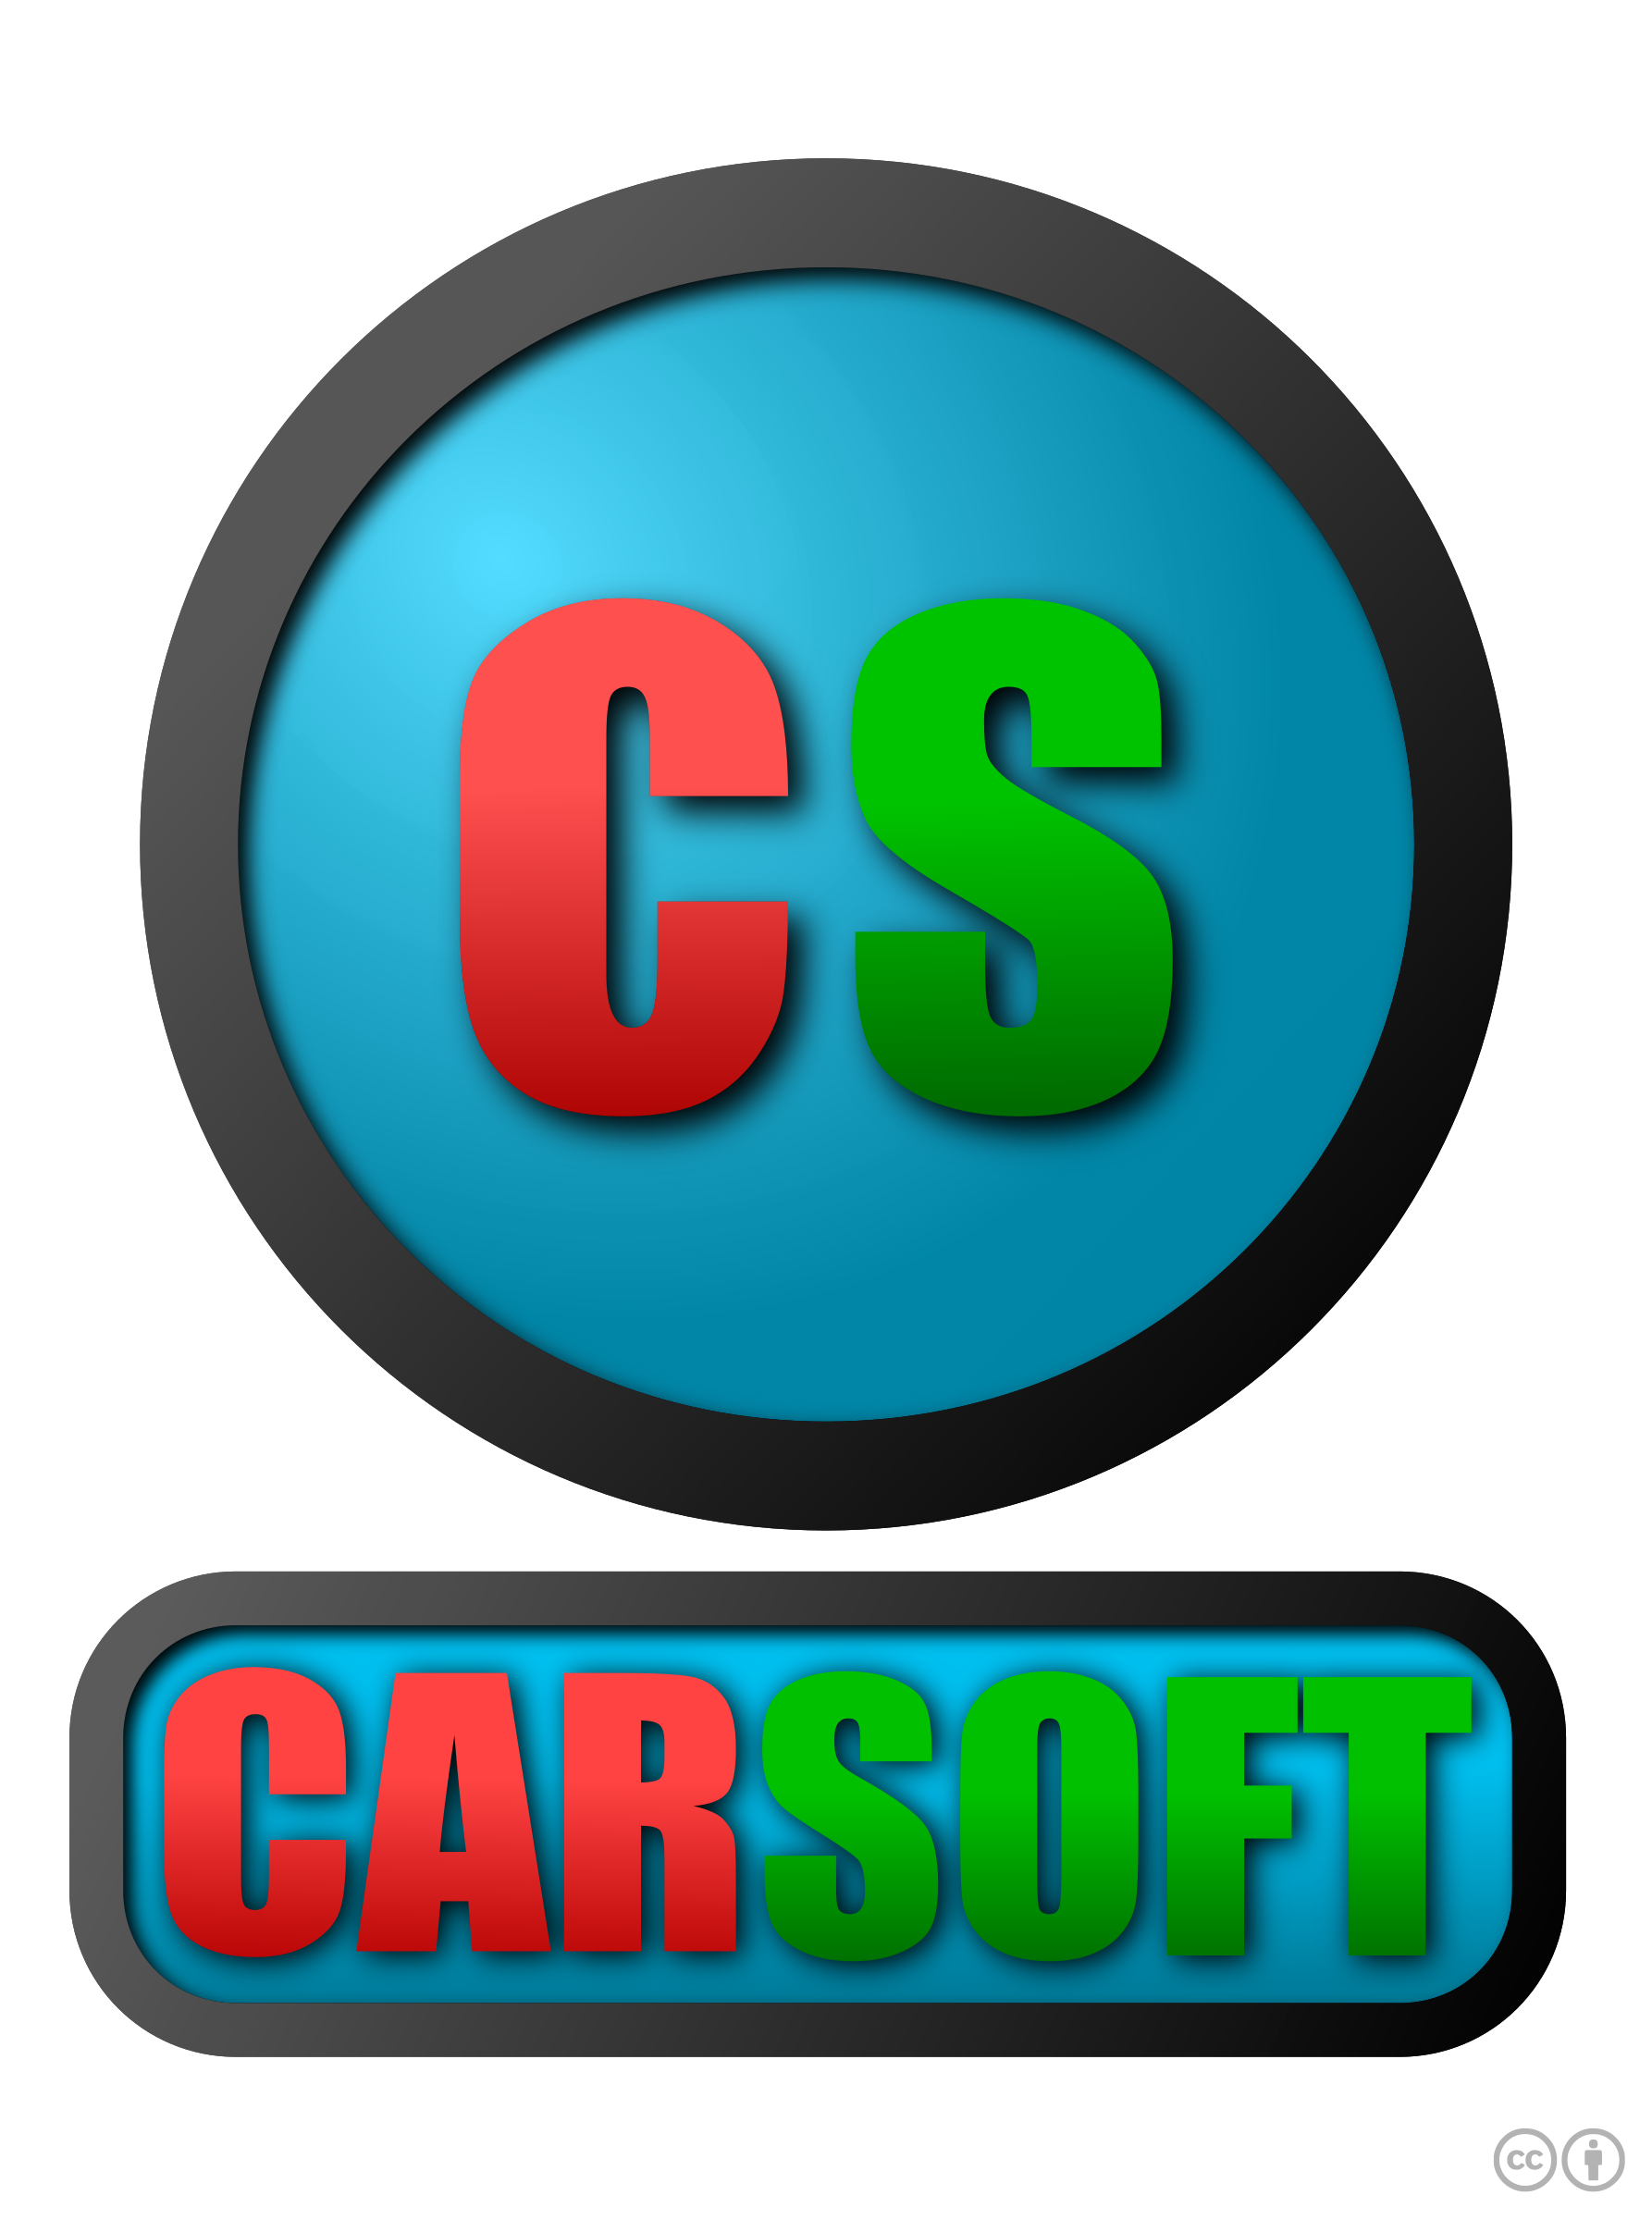 carsoft by Jonny Cantão